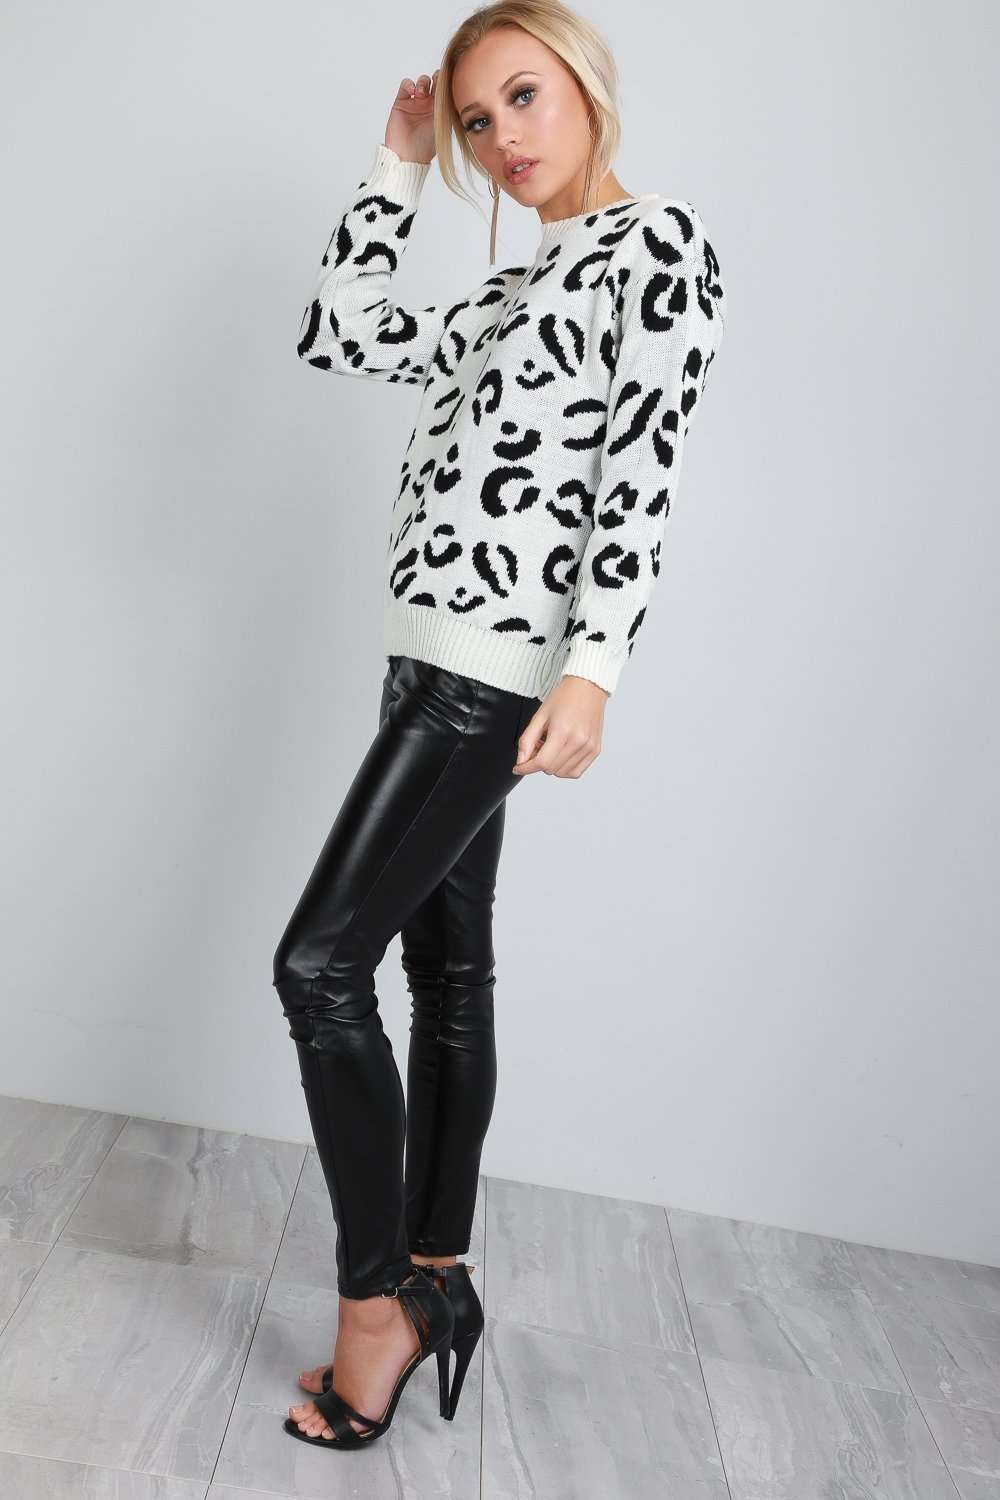 Carrie Long Sleeve Leopard Print Knitted Jumper - bejealous-com